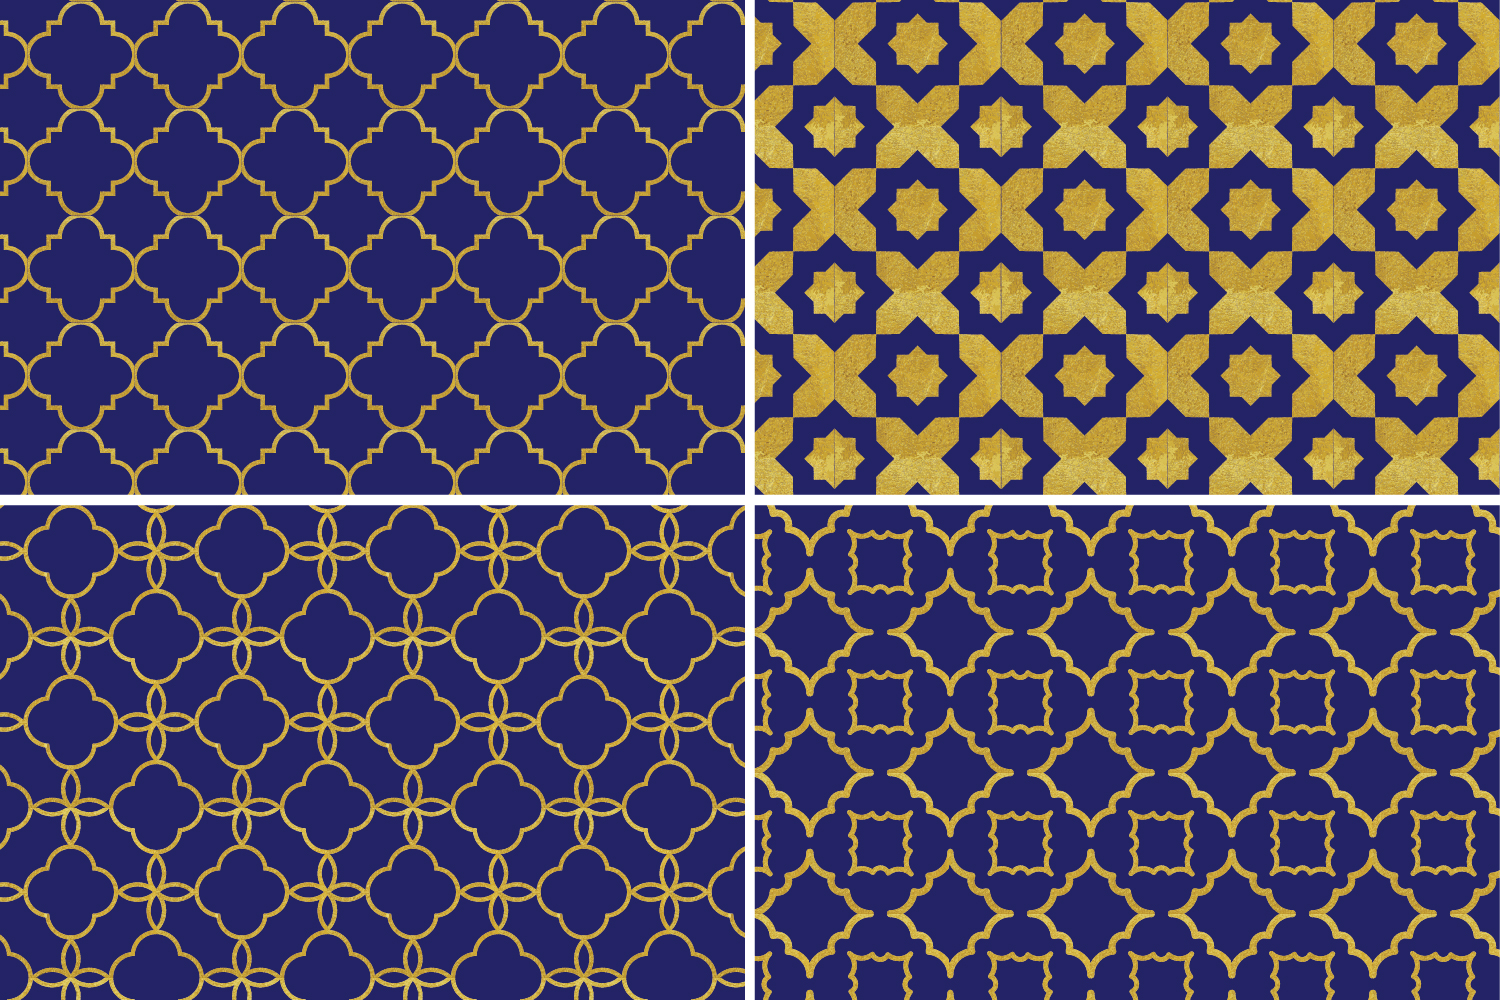 8 Seamless Moroccan Patterns - Gold & Cobalt Blue Set 2 example image 6